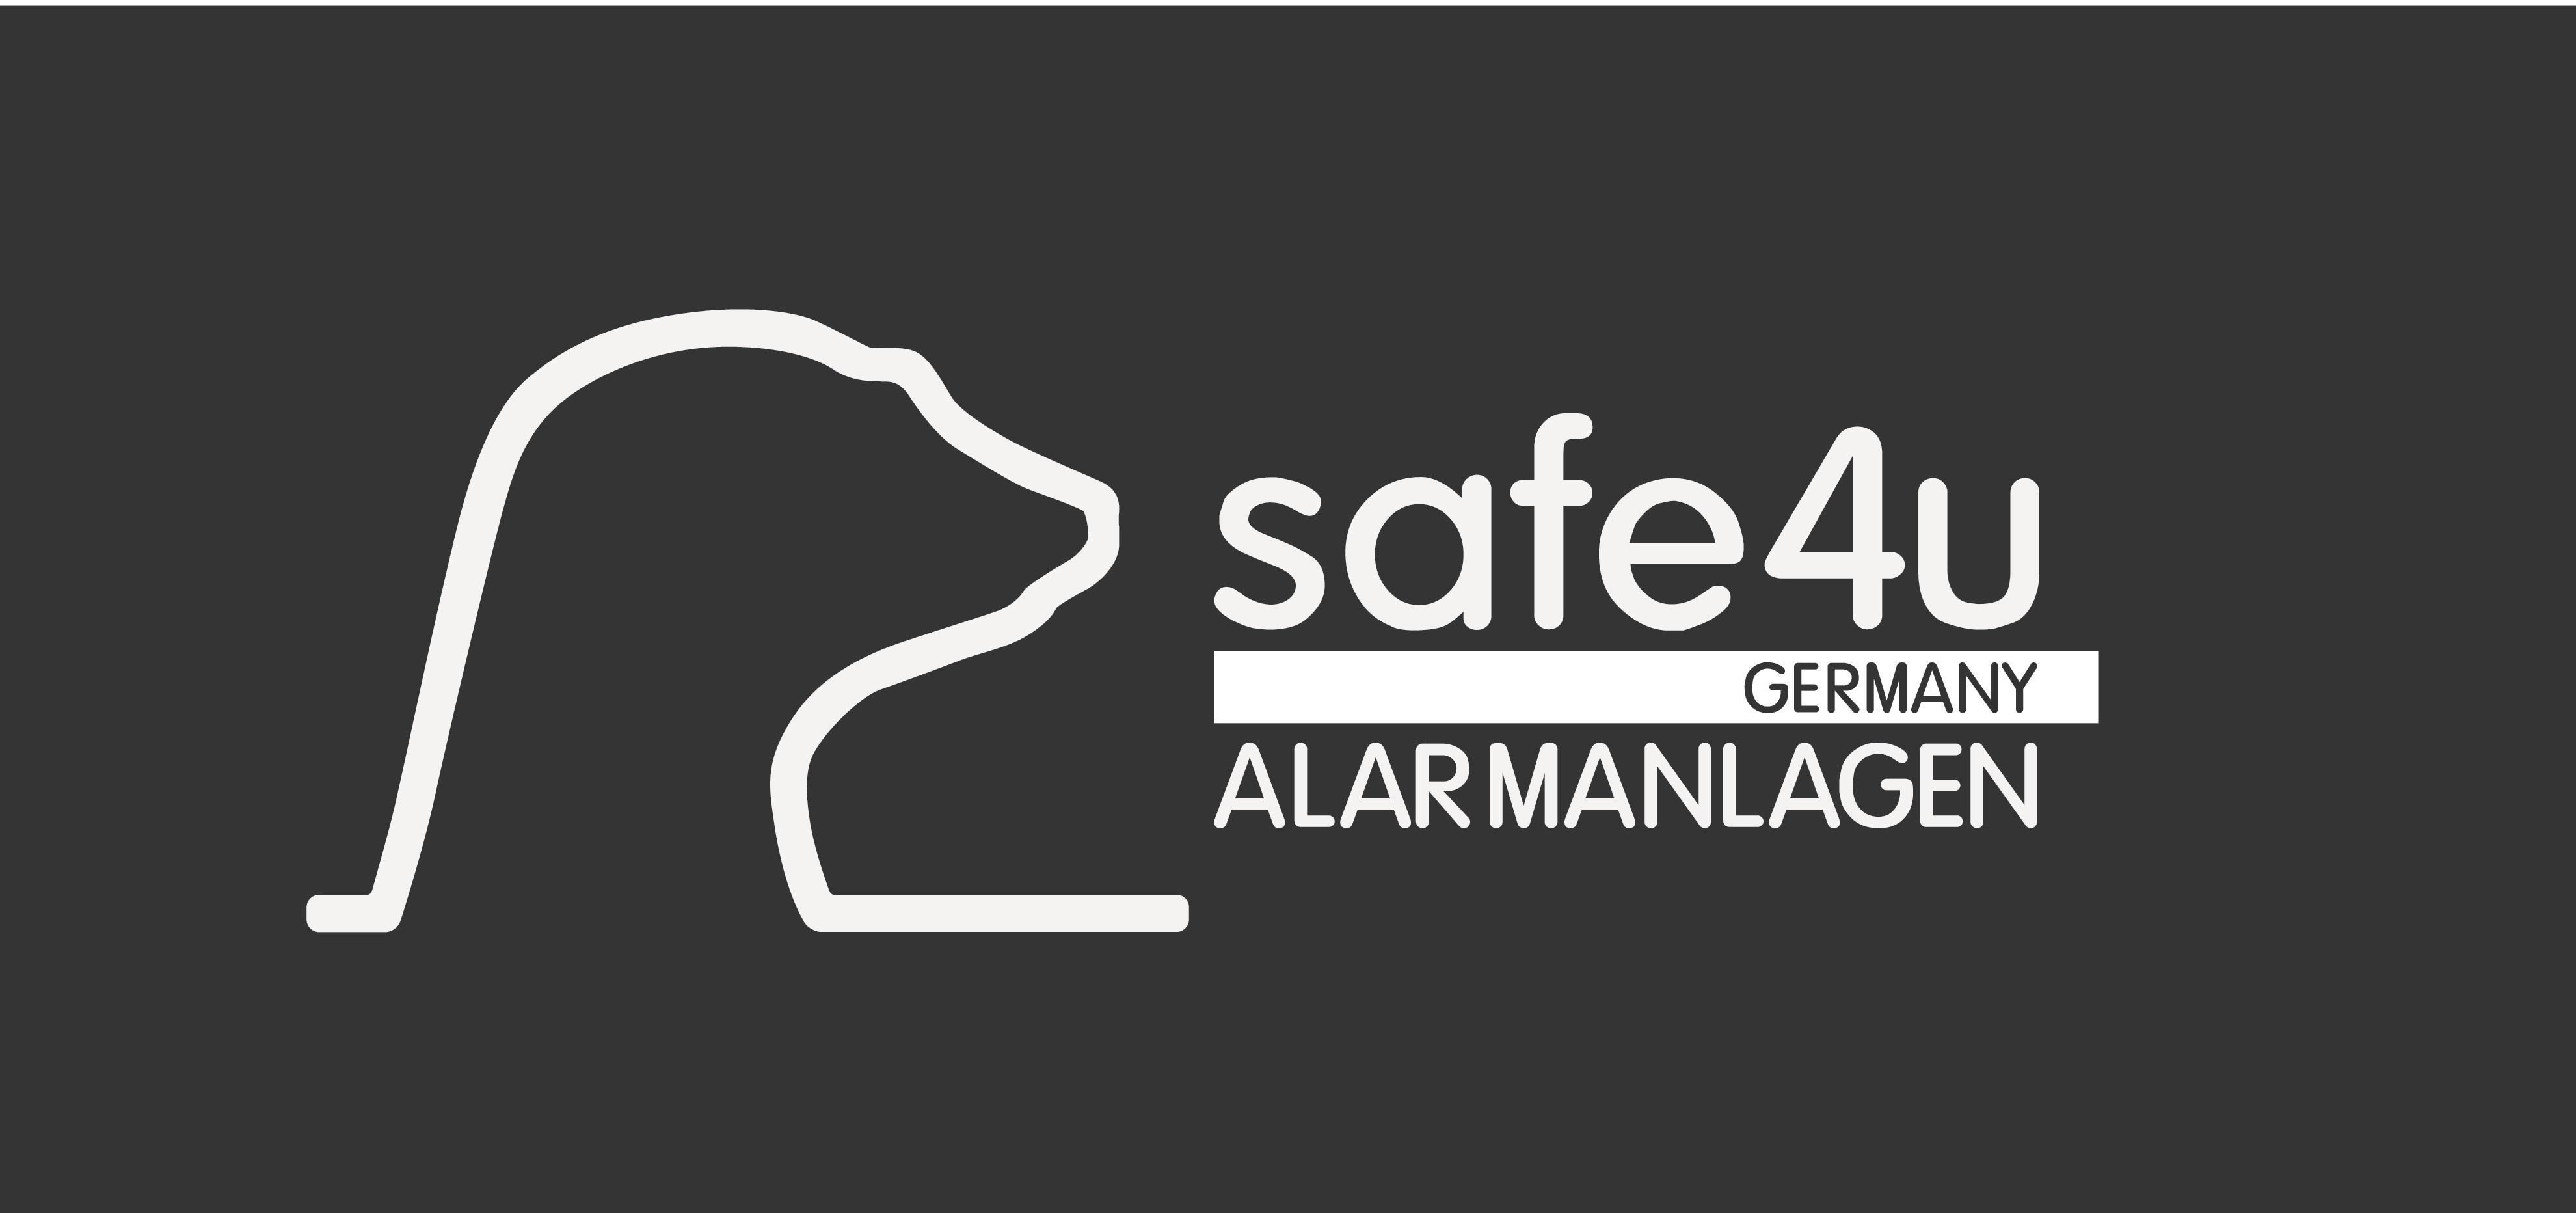 safe4u Germany Alarmanlagen / Sicherheit